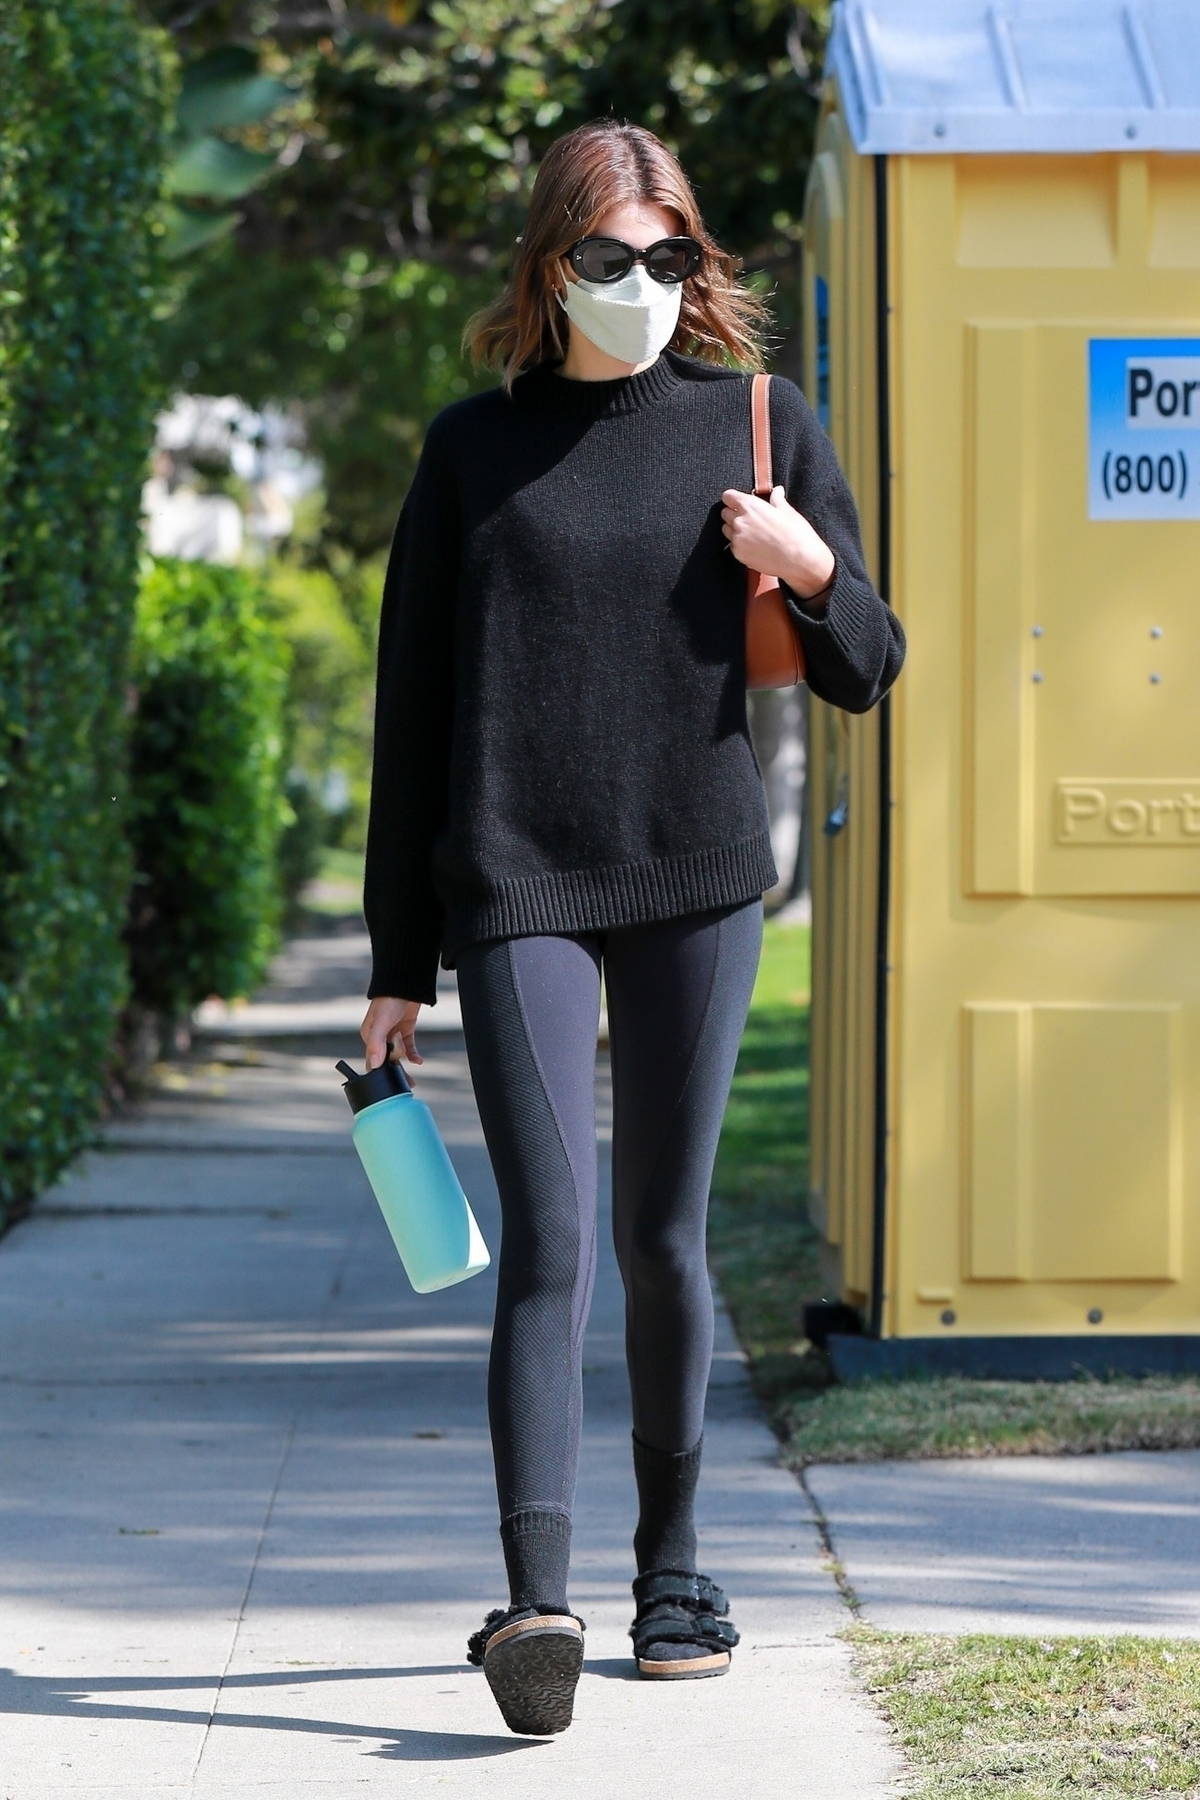 Kaia Gerber sports all-black sweater and leggings as she attends her Pilates class with a friend in West Hollywood, California